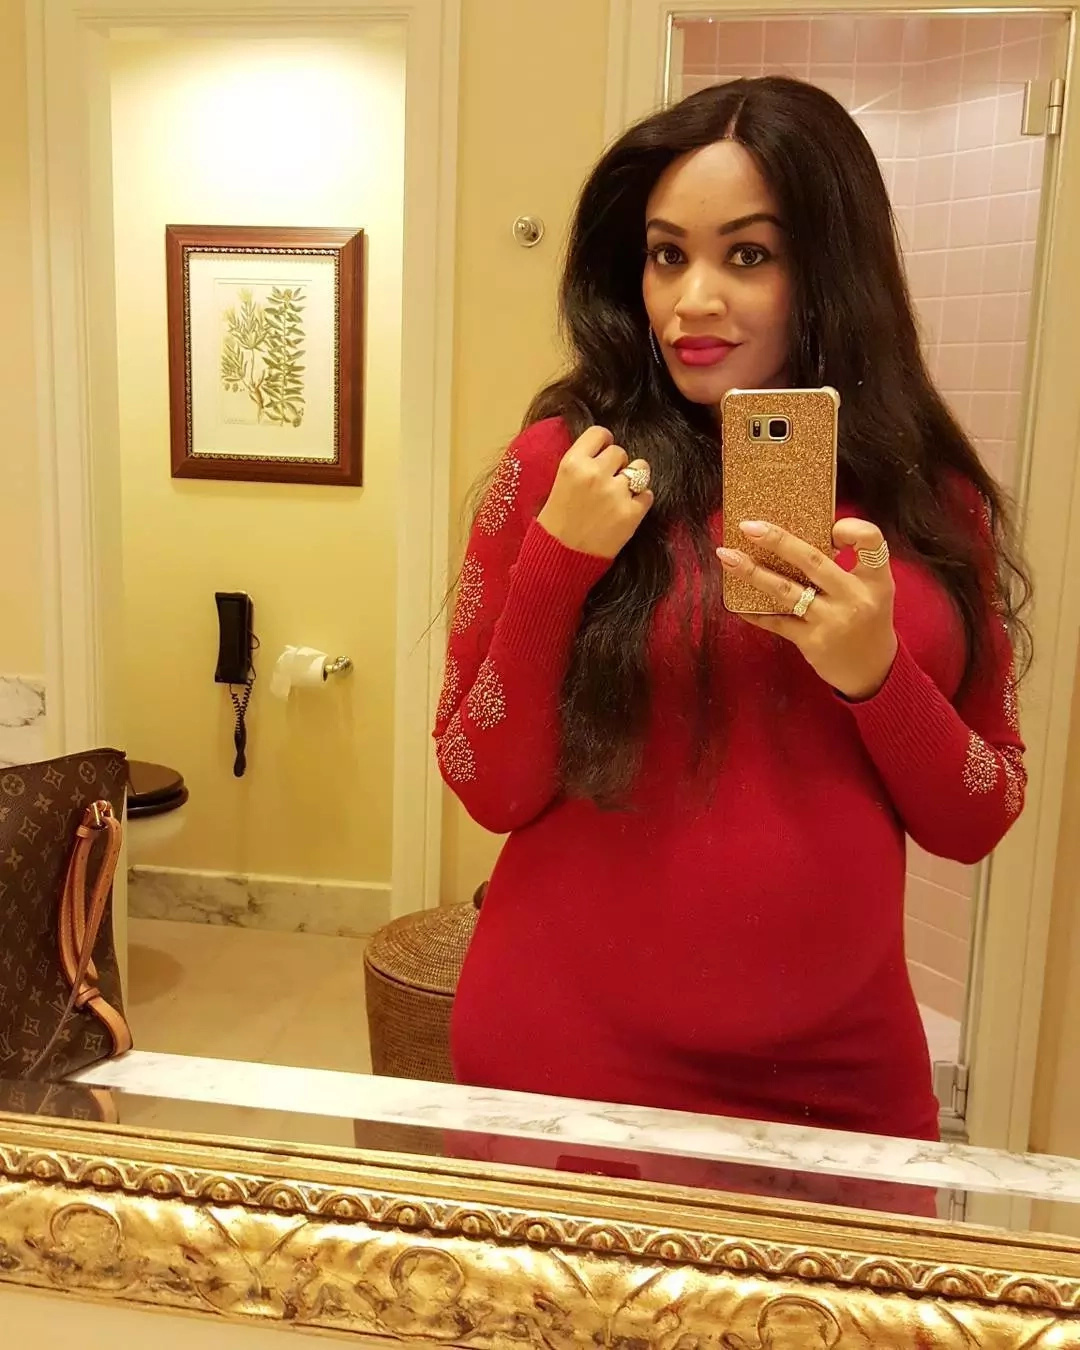 Zari Hassan blasted for 'stealing'